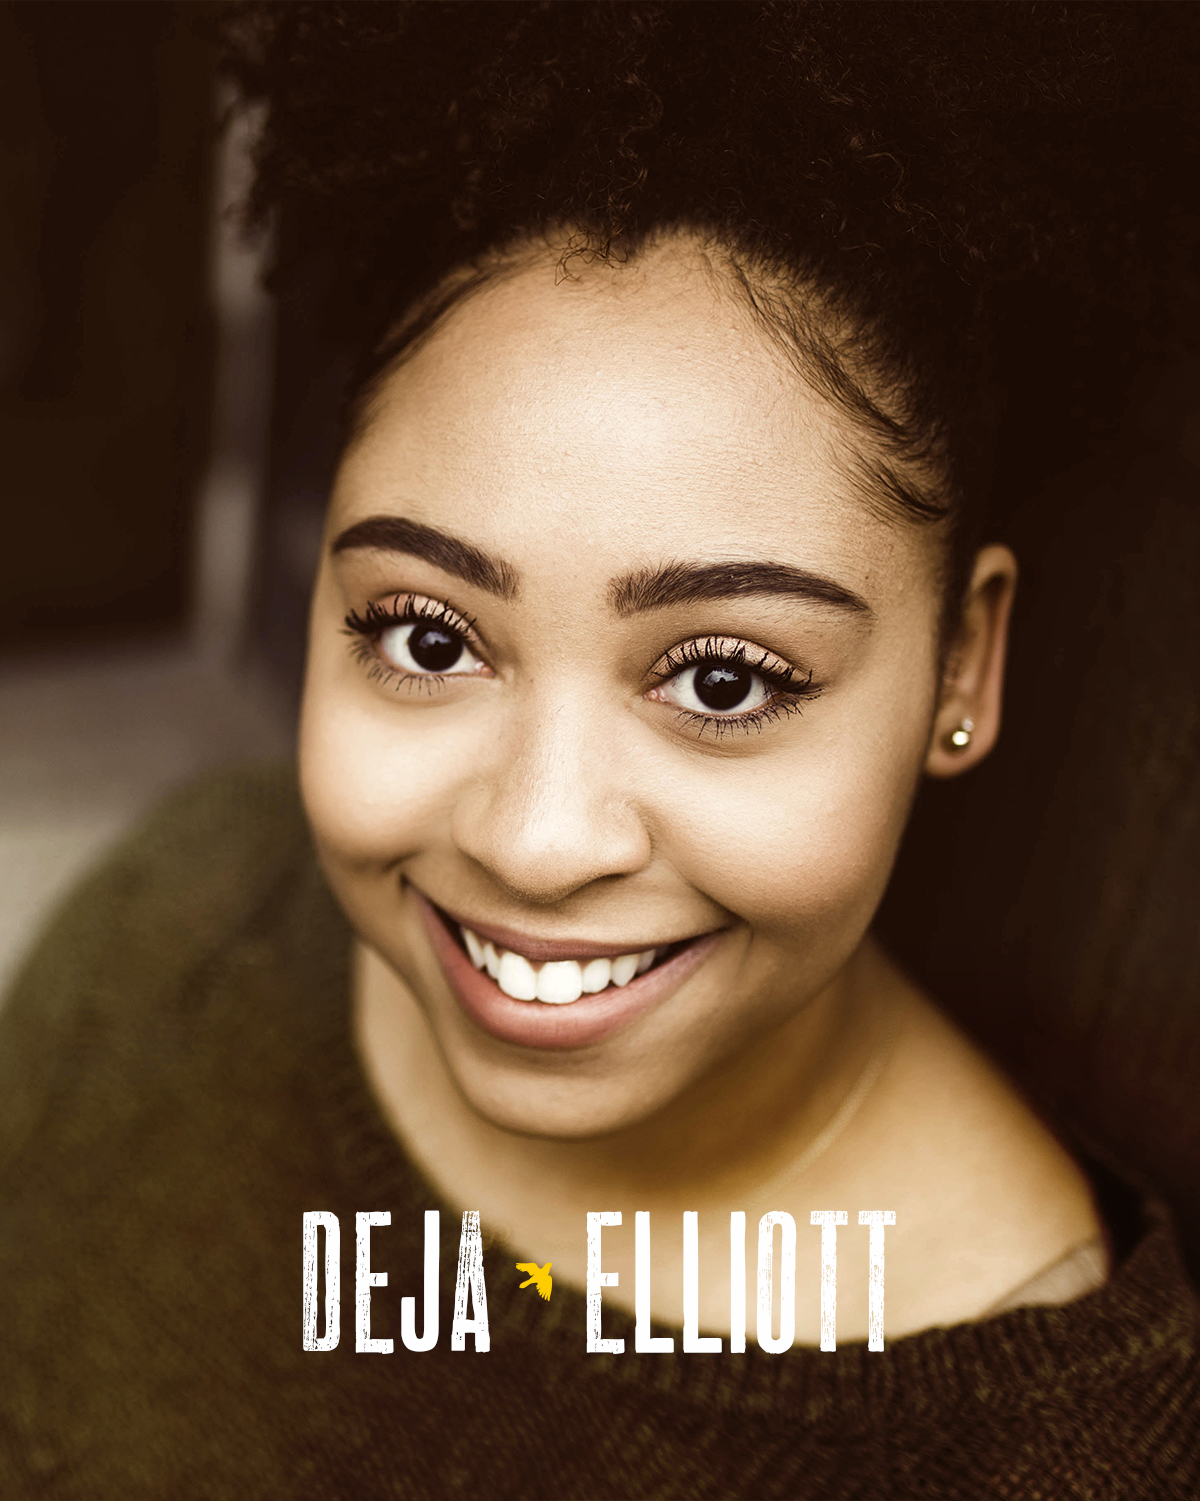 DEJA ELLIOTT  (Ensemble) is a recent graduate of the WVU School of Theatre and Dance. She is thrilled to be working with West Virginia Public Theatre again, and very happy to be a part of this beautiful developing work. Regional credits:  Storming Heaven: The Musical  staged reading (WVPT). Collegiate credits;  Assassins ,  The Three Musketeers ,  The Trojan Women , and  You Can't Take It With You .